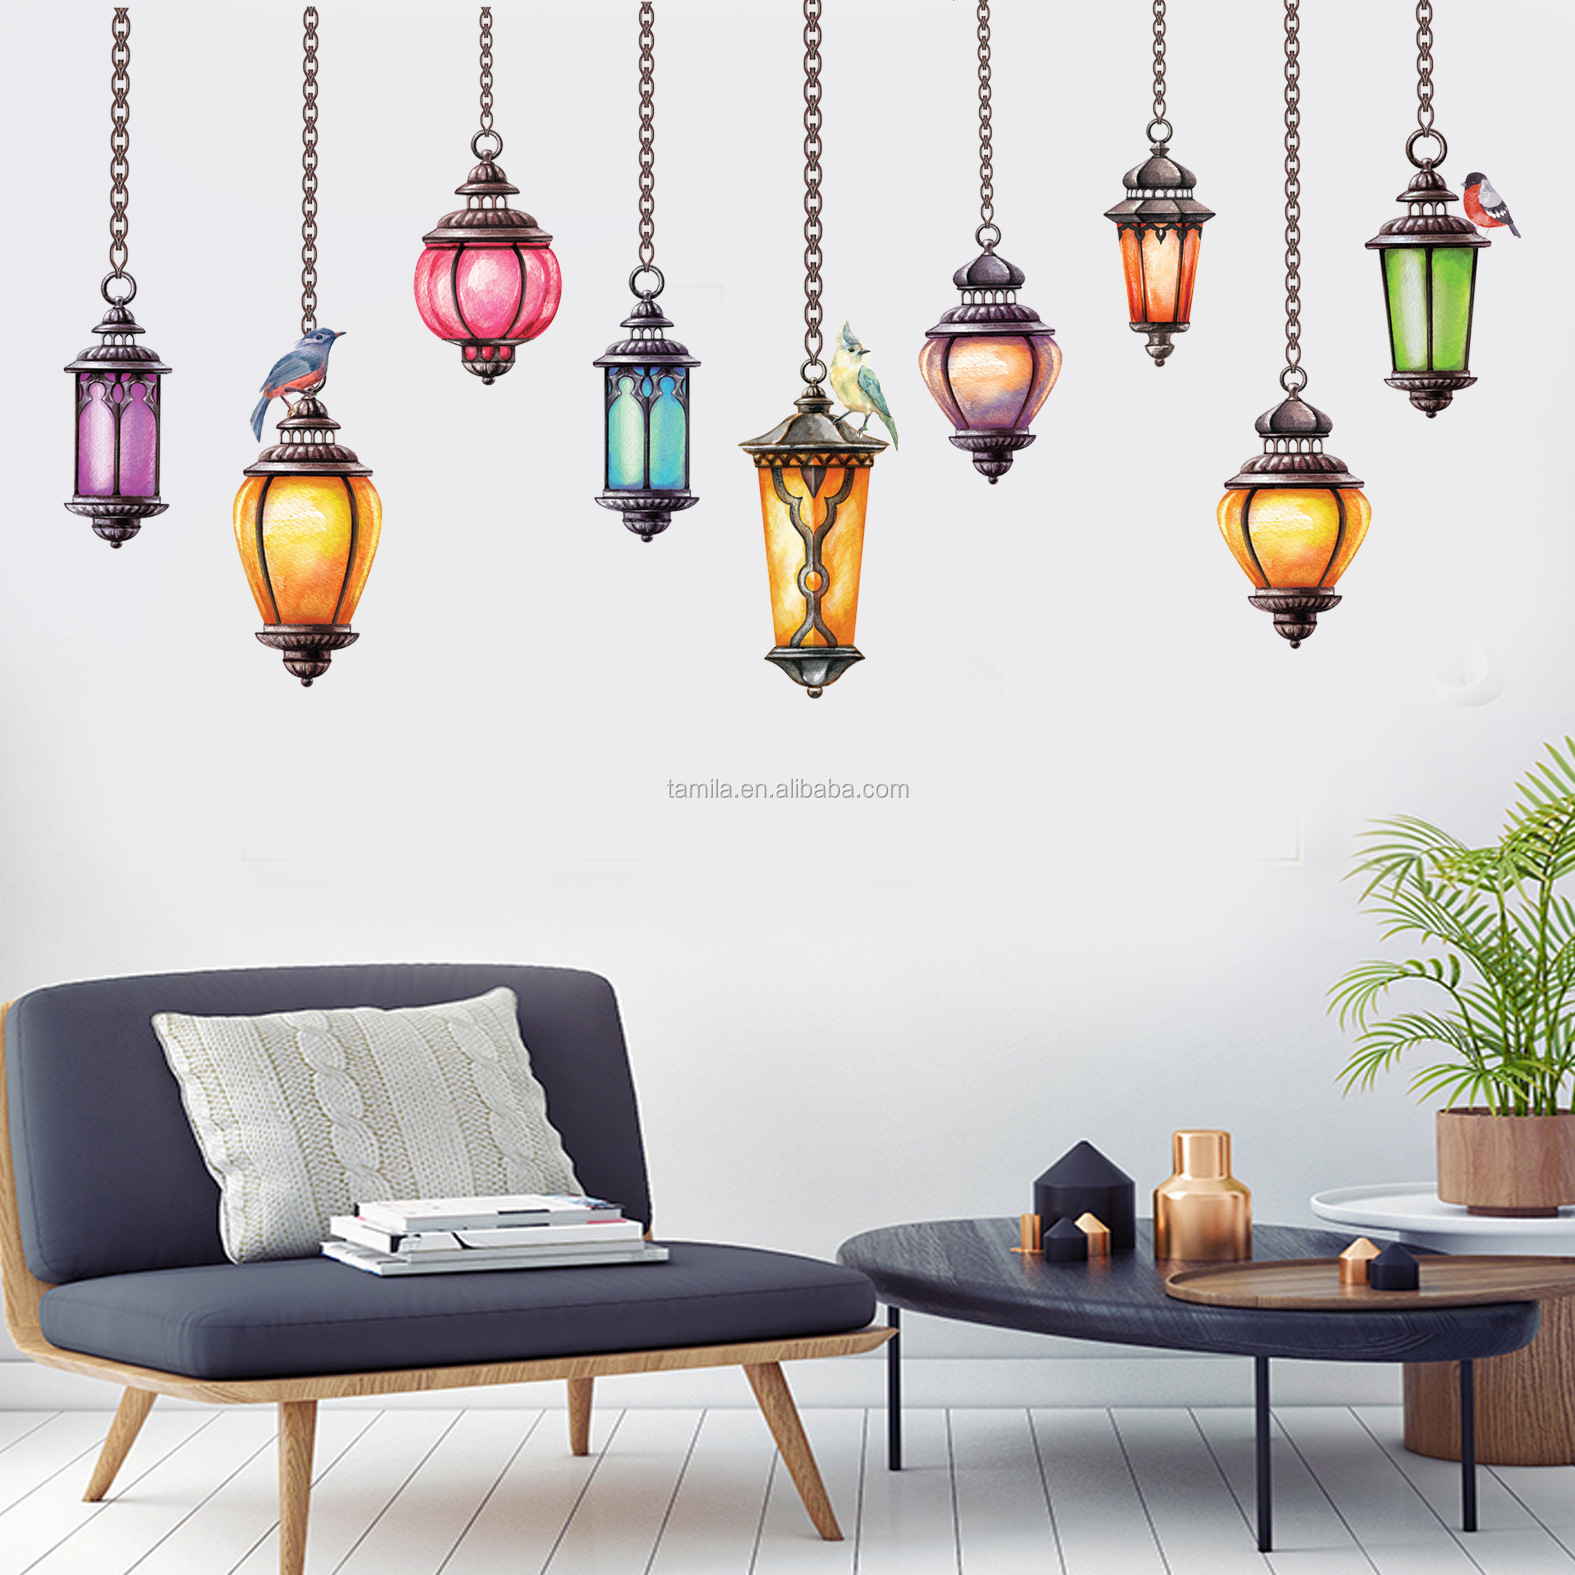 Vintage pendant lamp drop light decorative pvc decal for furniture decor bathroom waterproof sticker